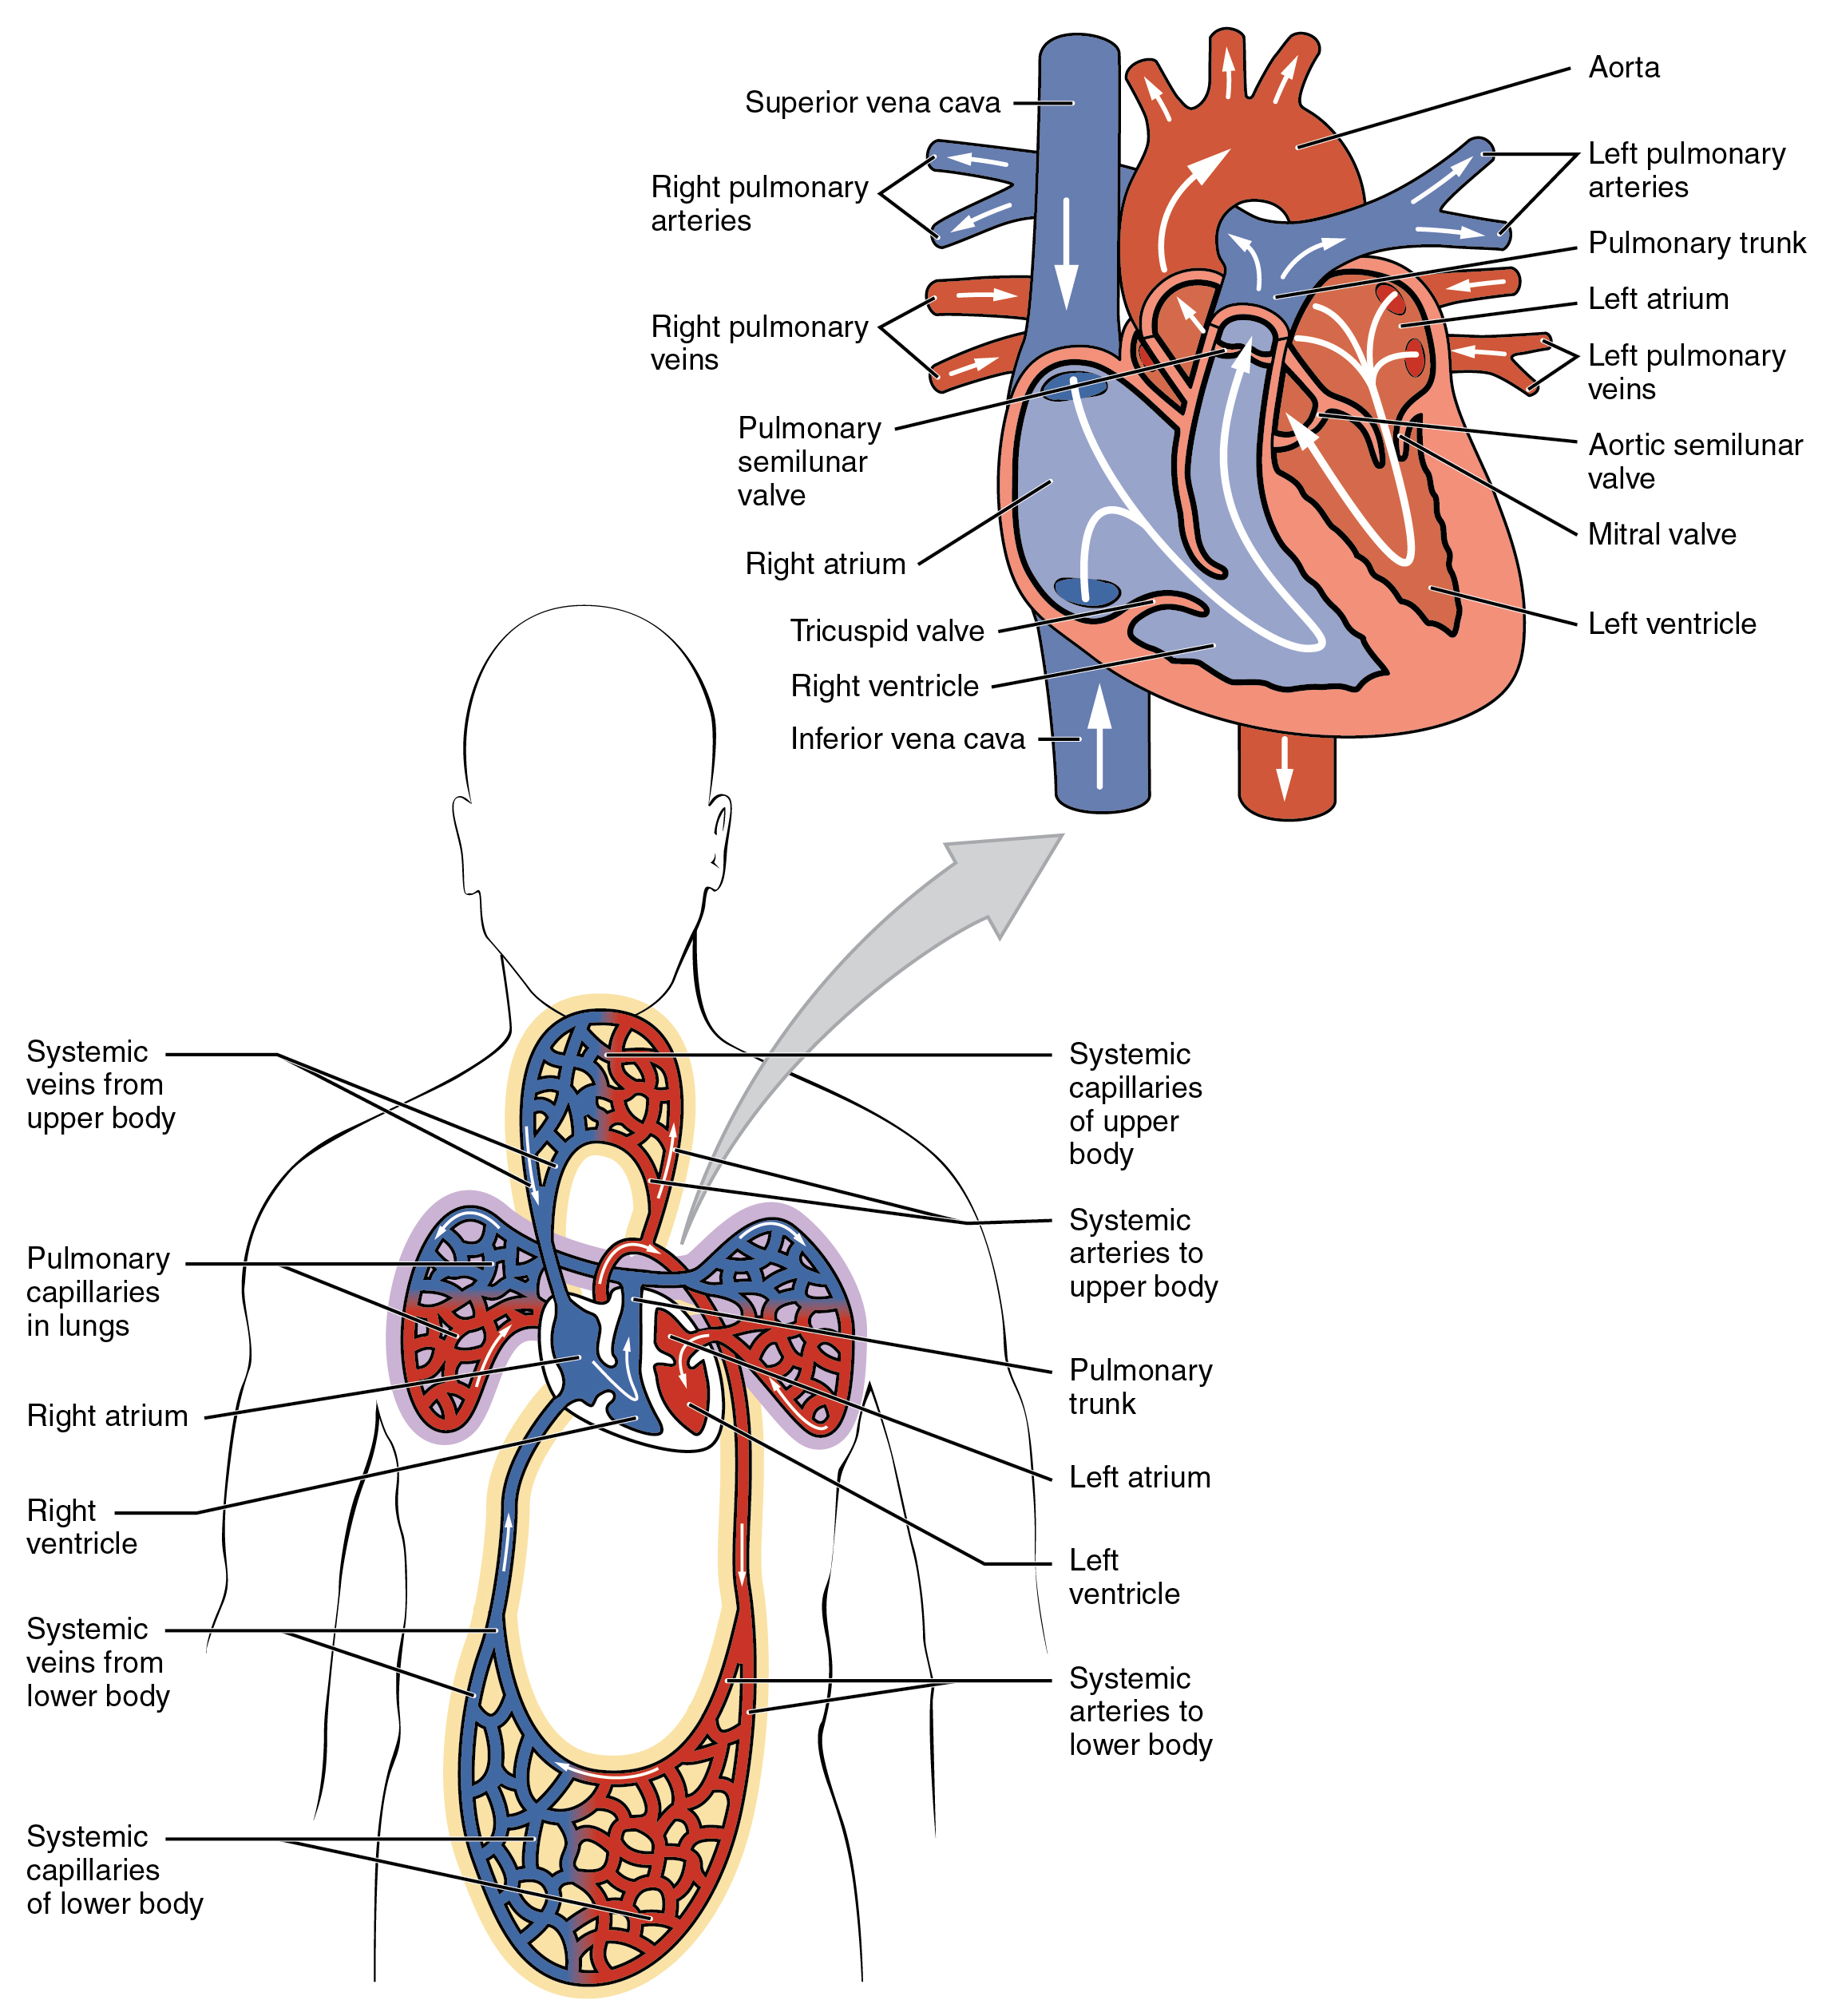 Heart anatomy anatomy and physiology the top panel shows the human heart with the arteries and veins labeled the bottom pooptronica Choice Image